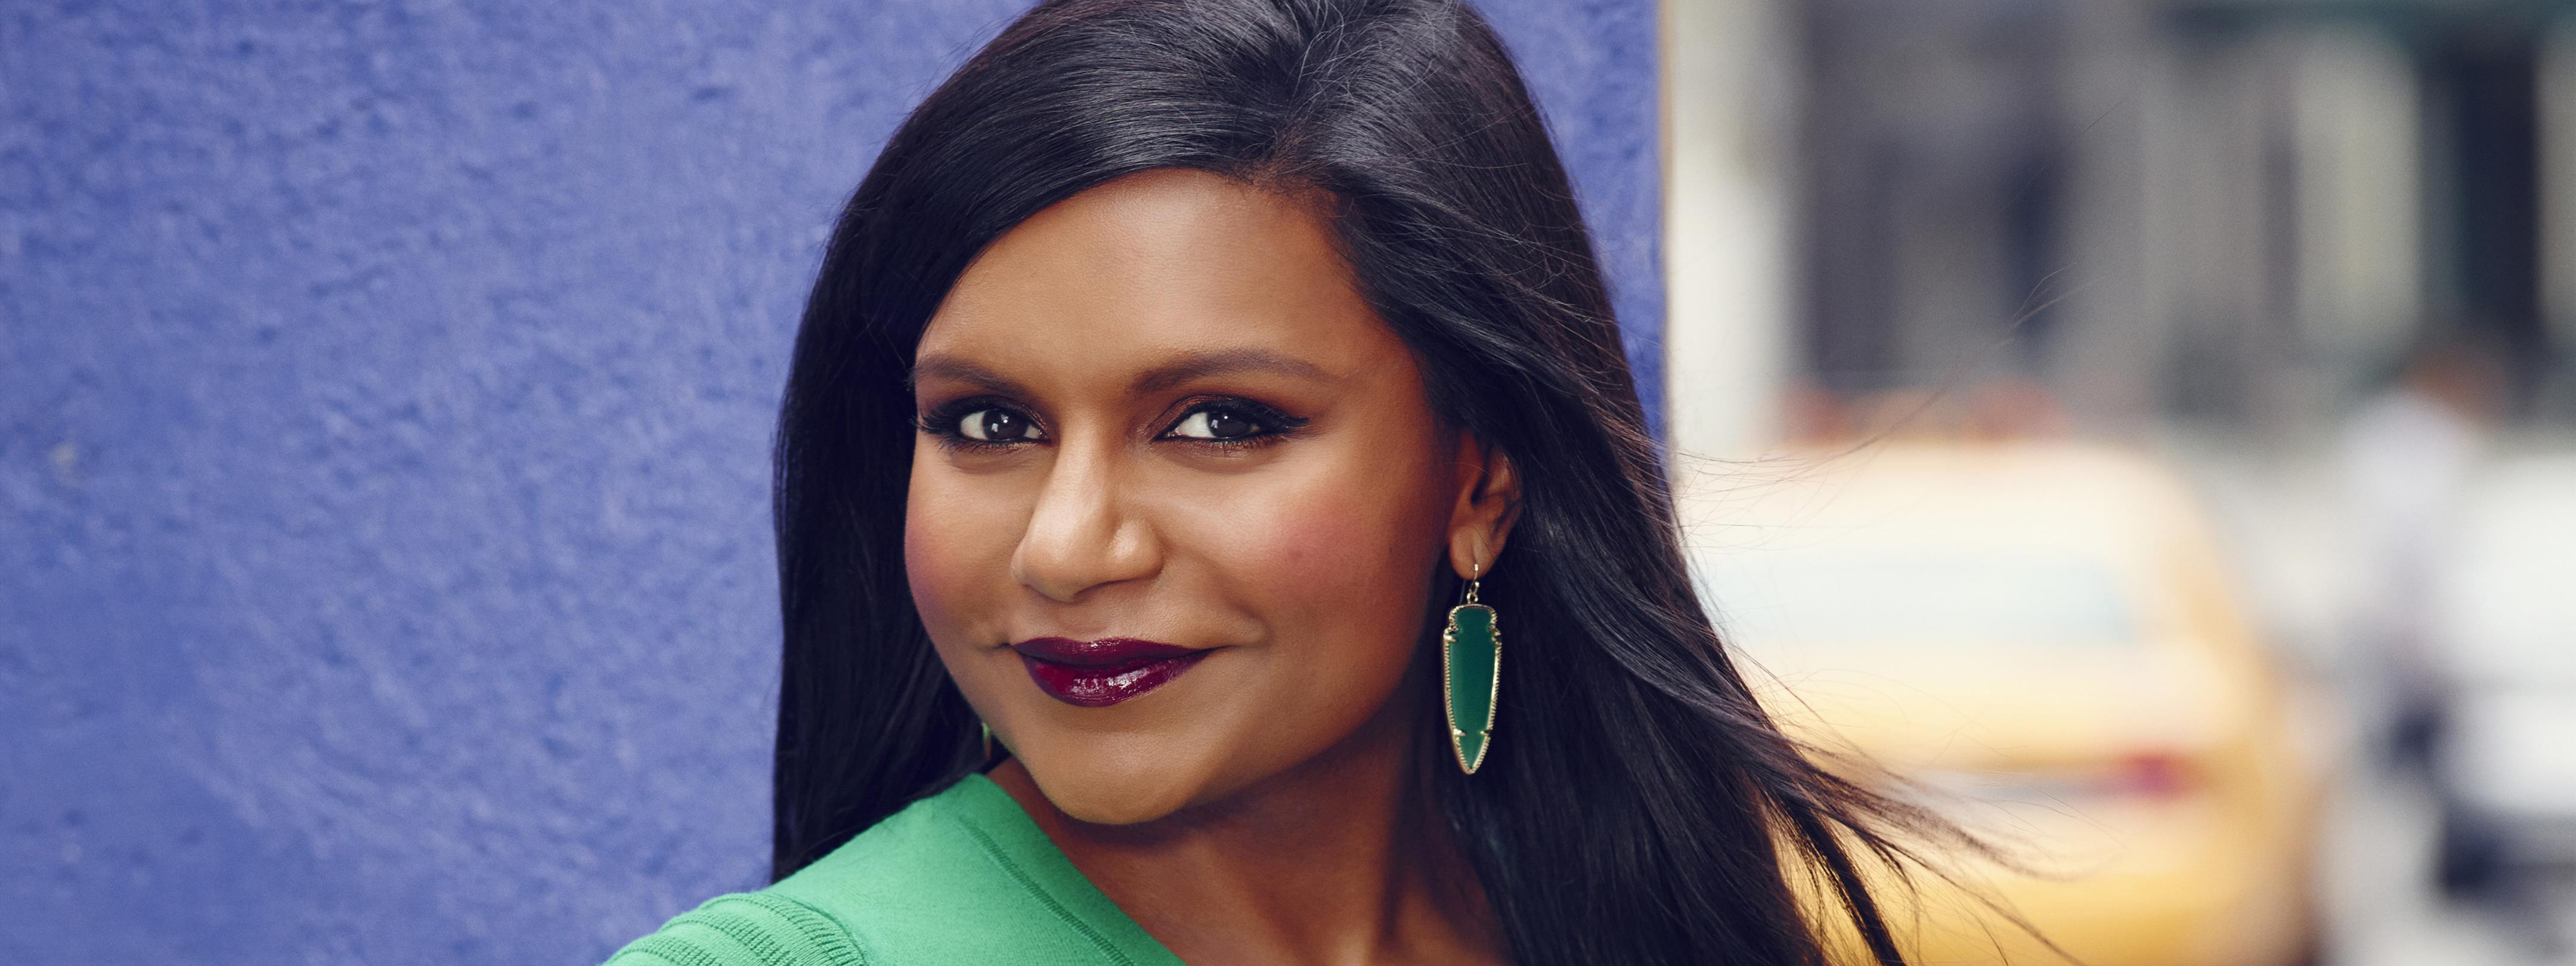 Mindy Kaling Wallpapers Images Photos Pictures Backgrounds 4320x1620